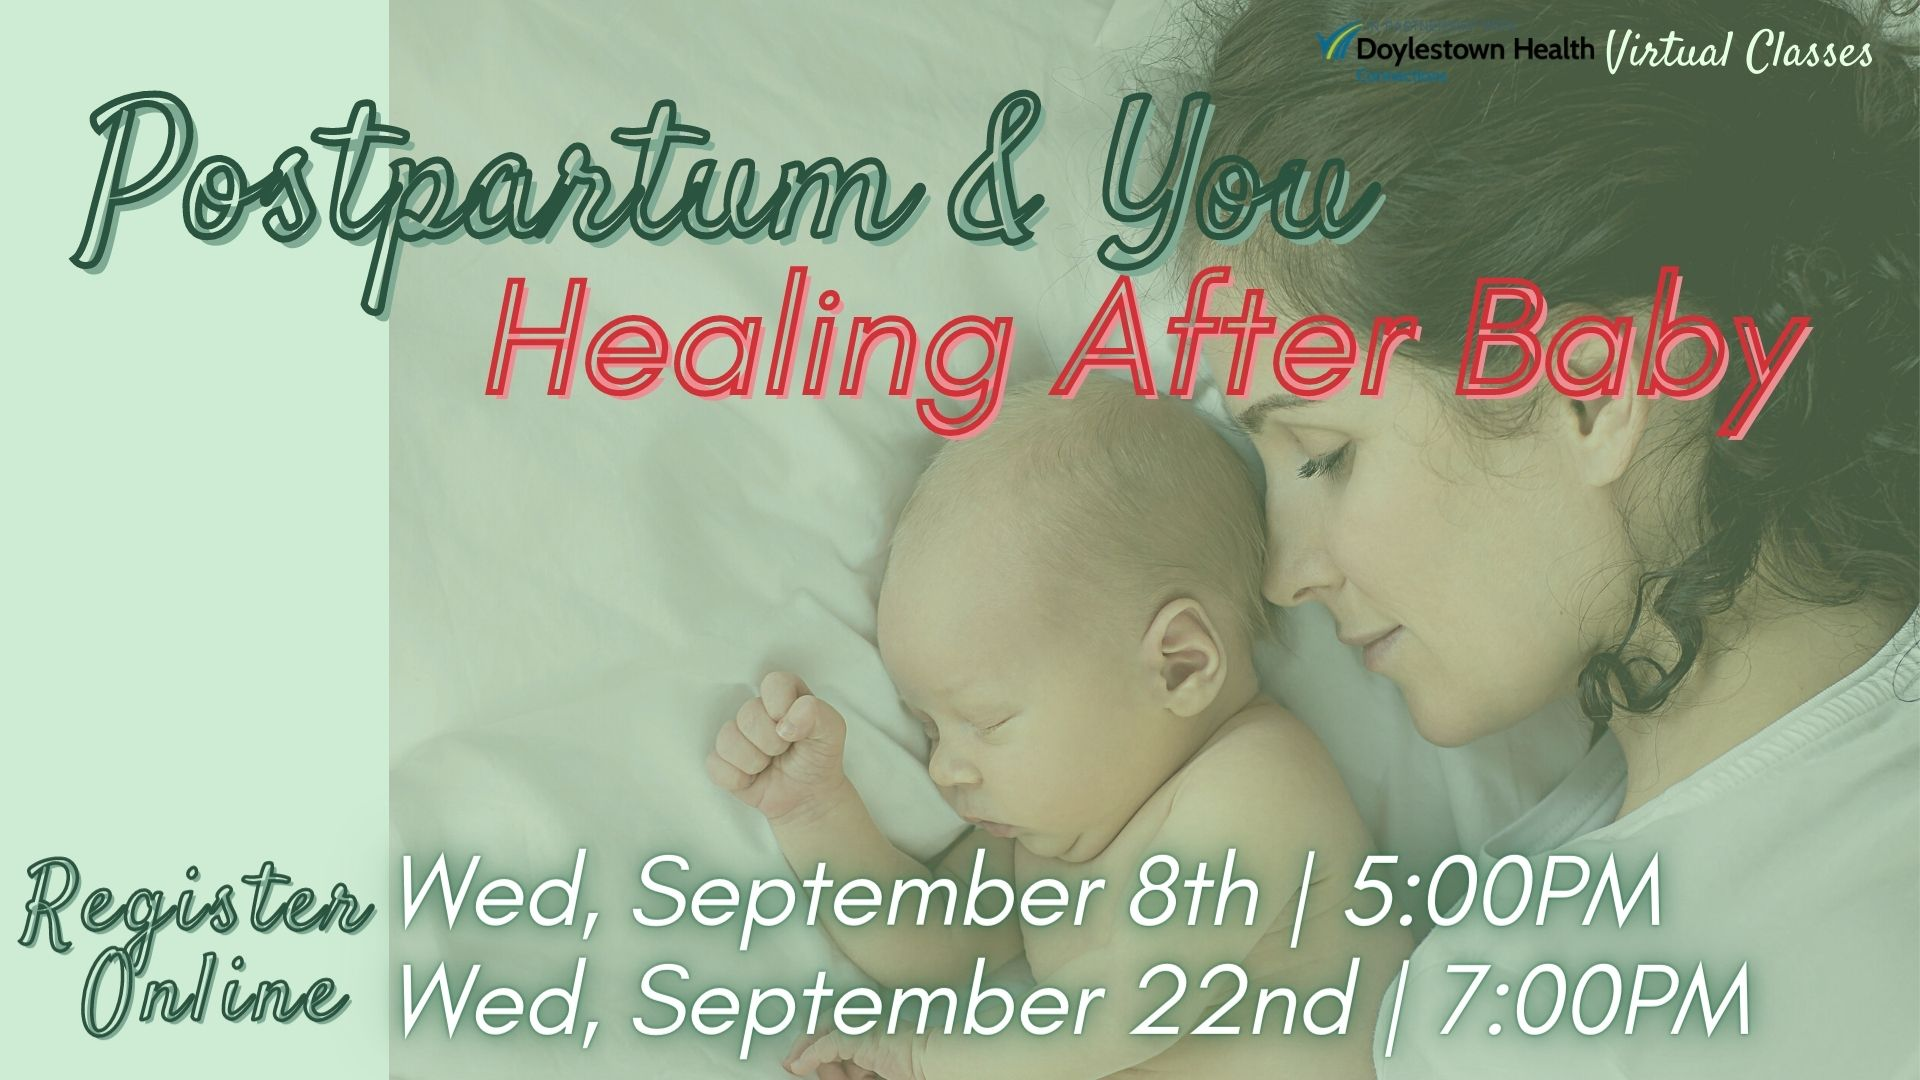 Postpartum & You: Healing After Baby